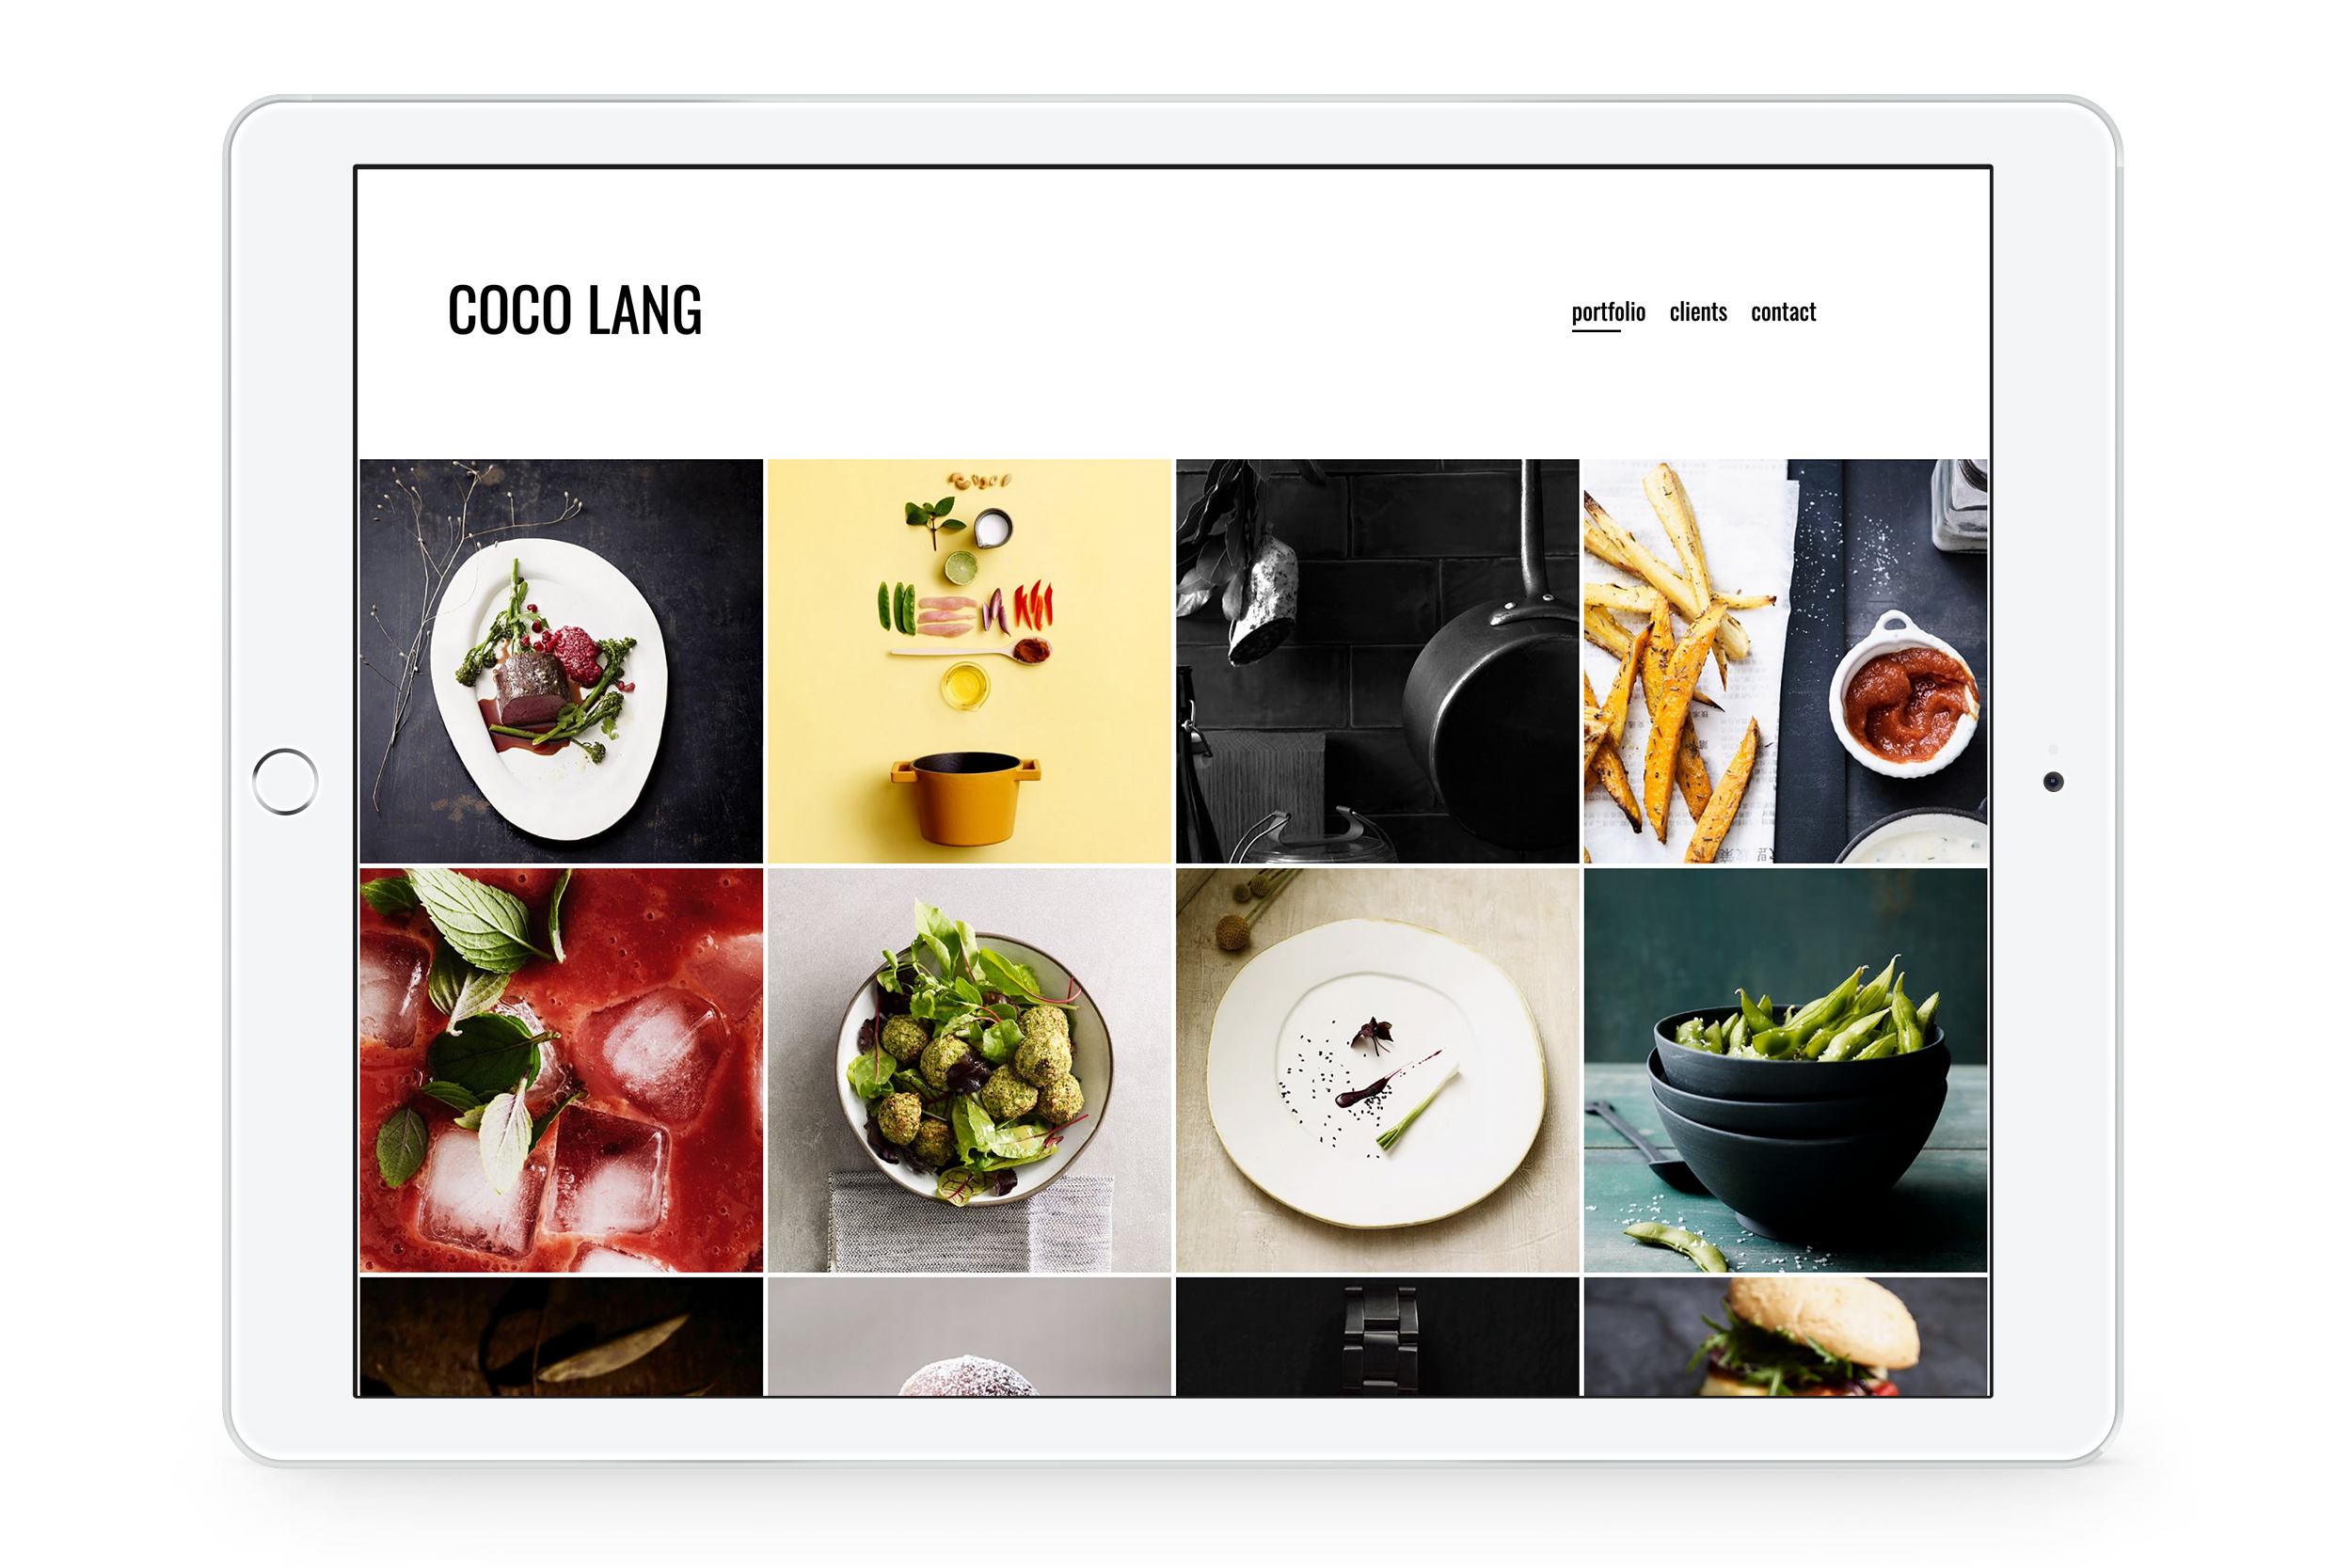 coco-lang-website-portfolio-overview-studio-ahoi.png